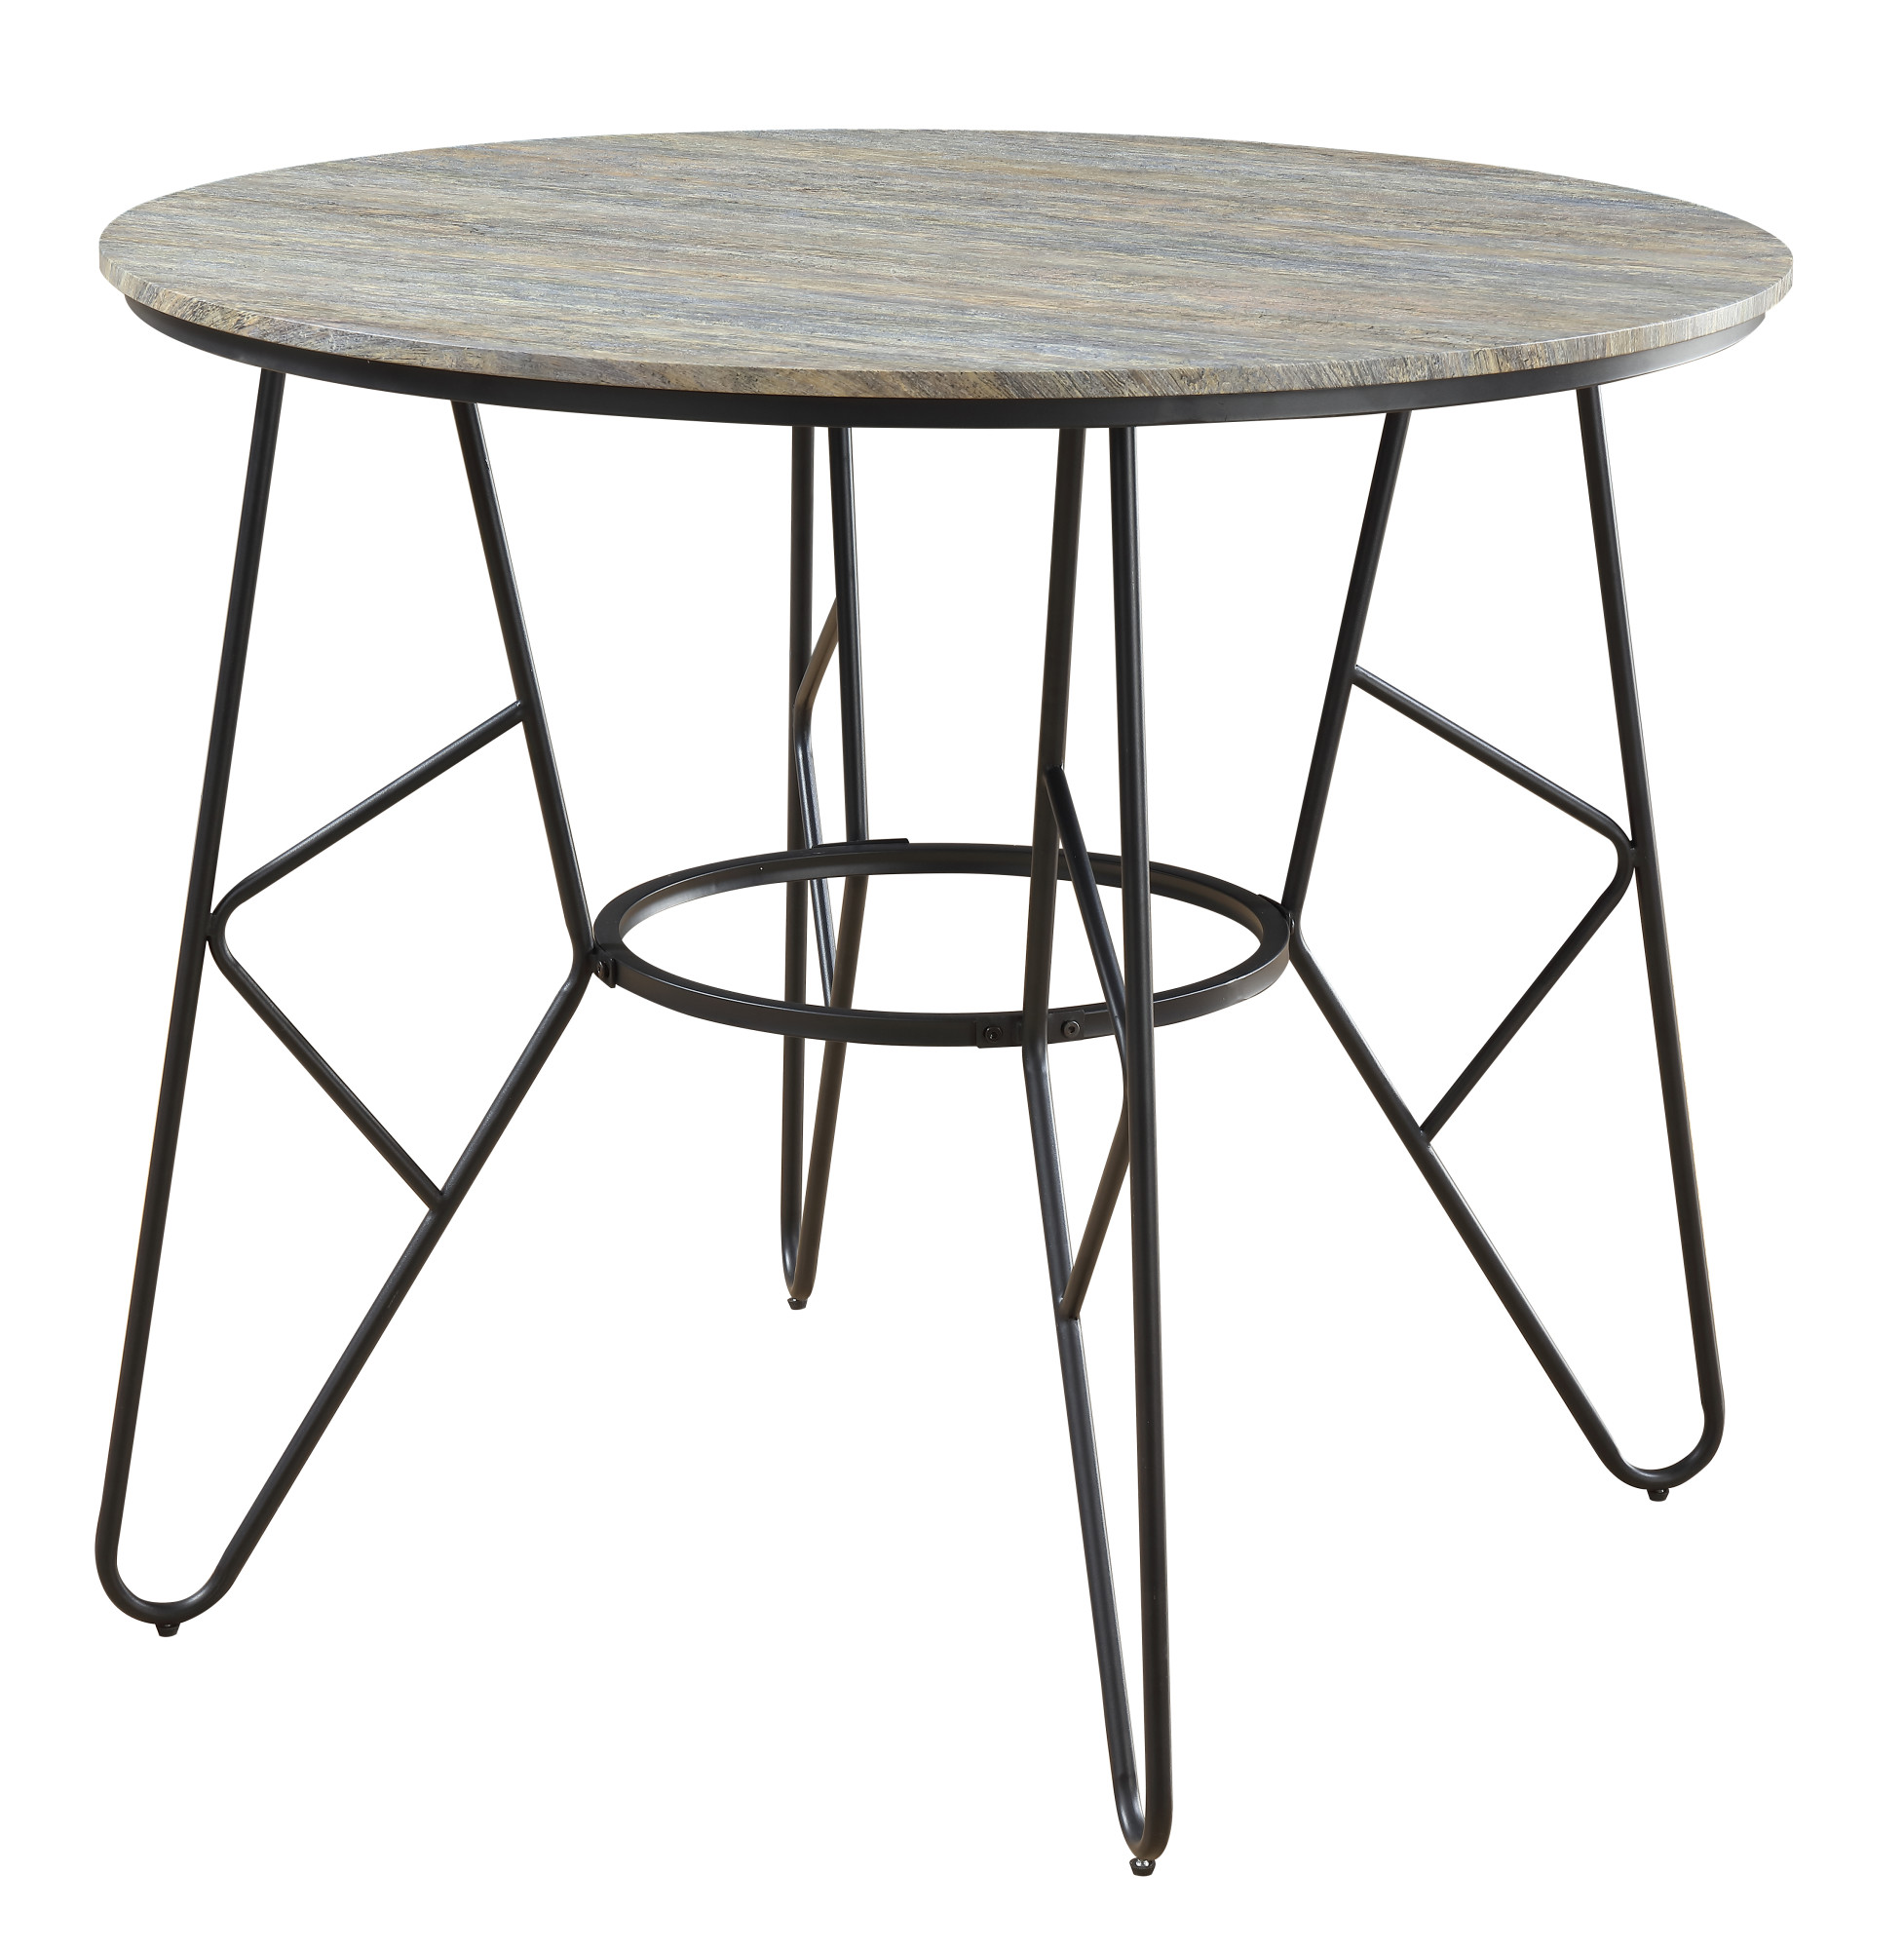 Emerald Home Emmett Stone Gray And Black Round Gathering Height Dining  Table With Round Tabletop And Metal Base